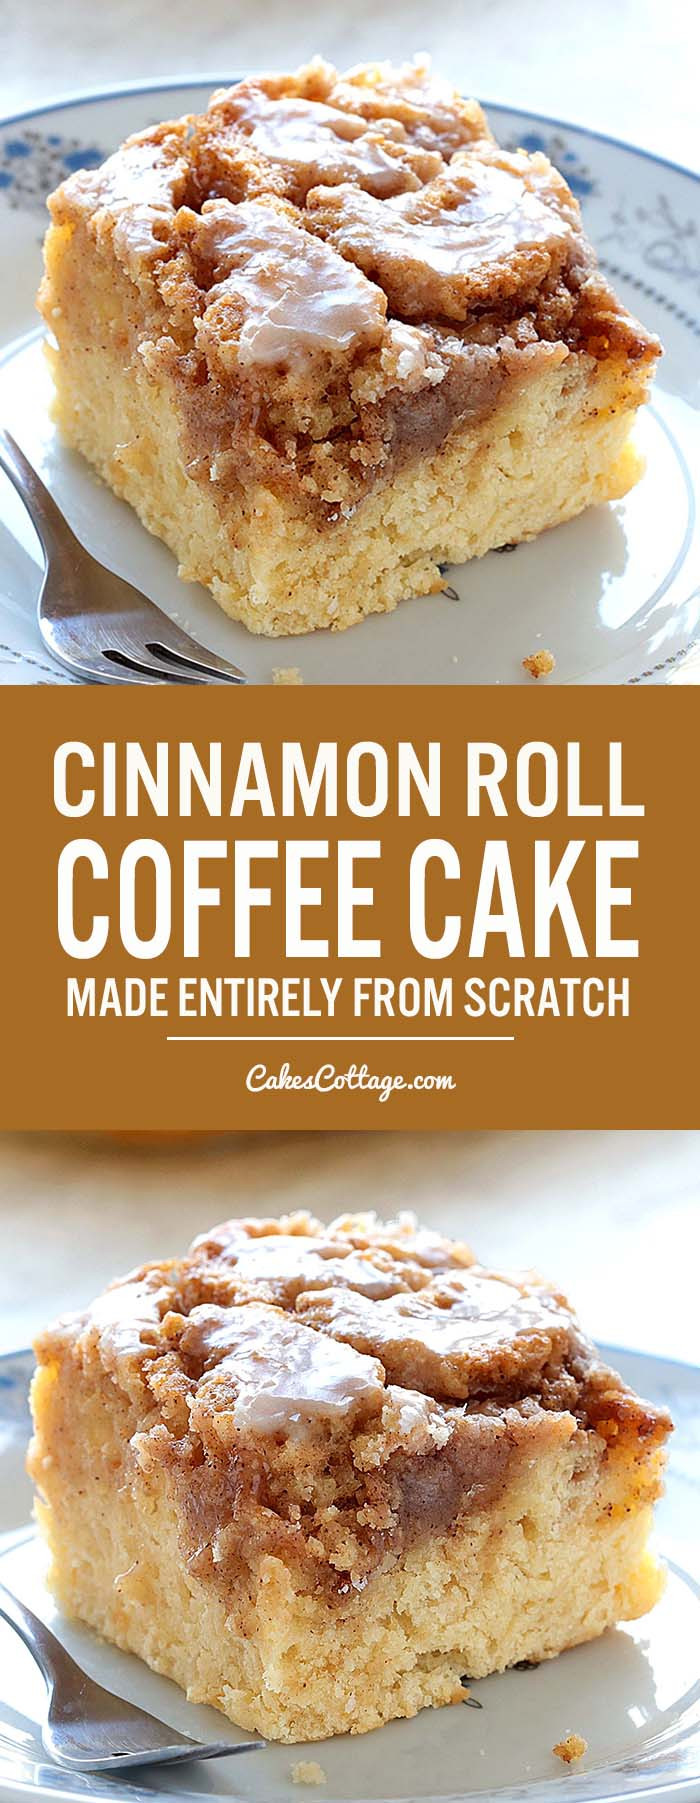 Coffee Cake Recipe Easy  Easy Cinnamon Roll Coffee Cake Cakescottage